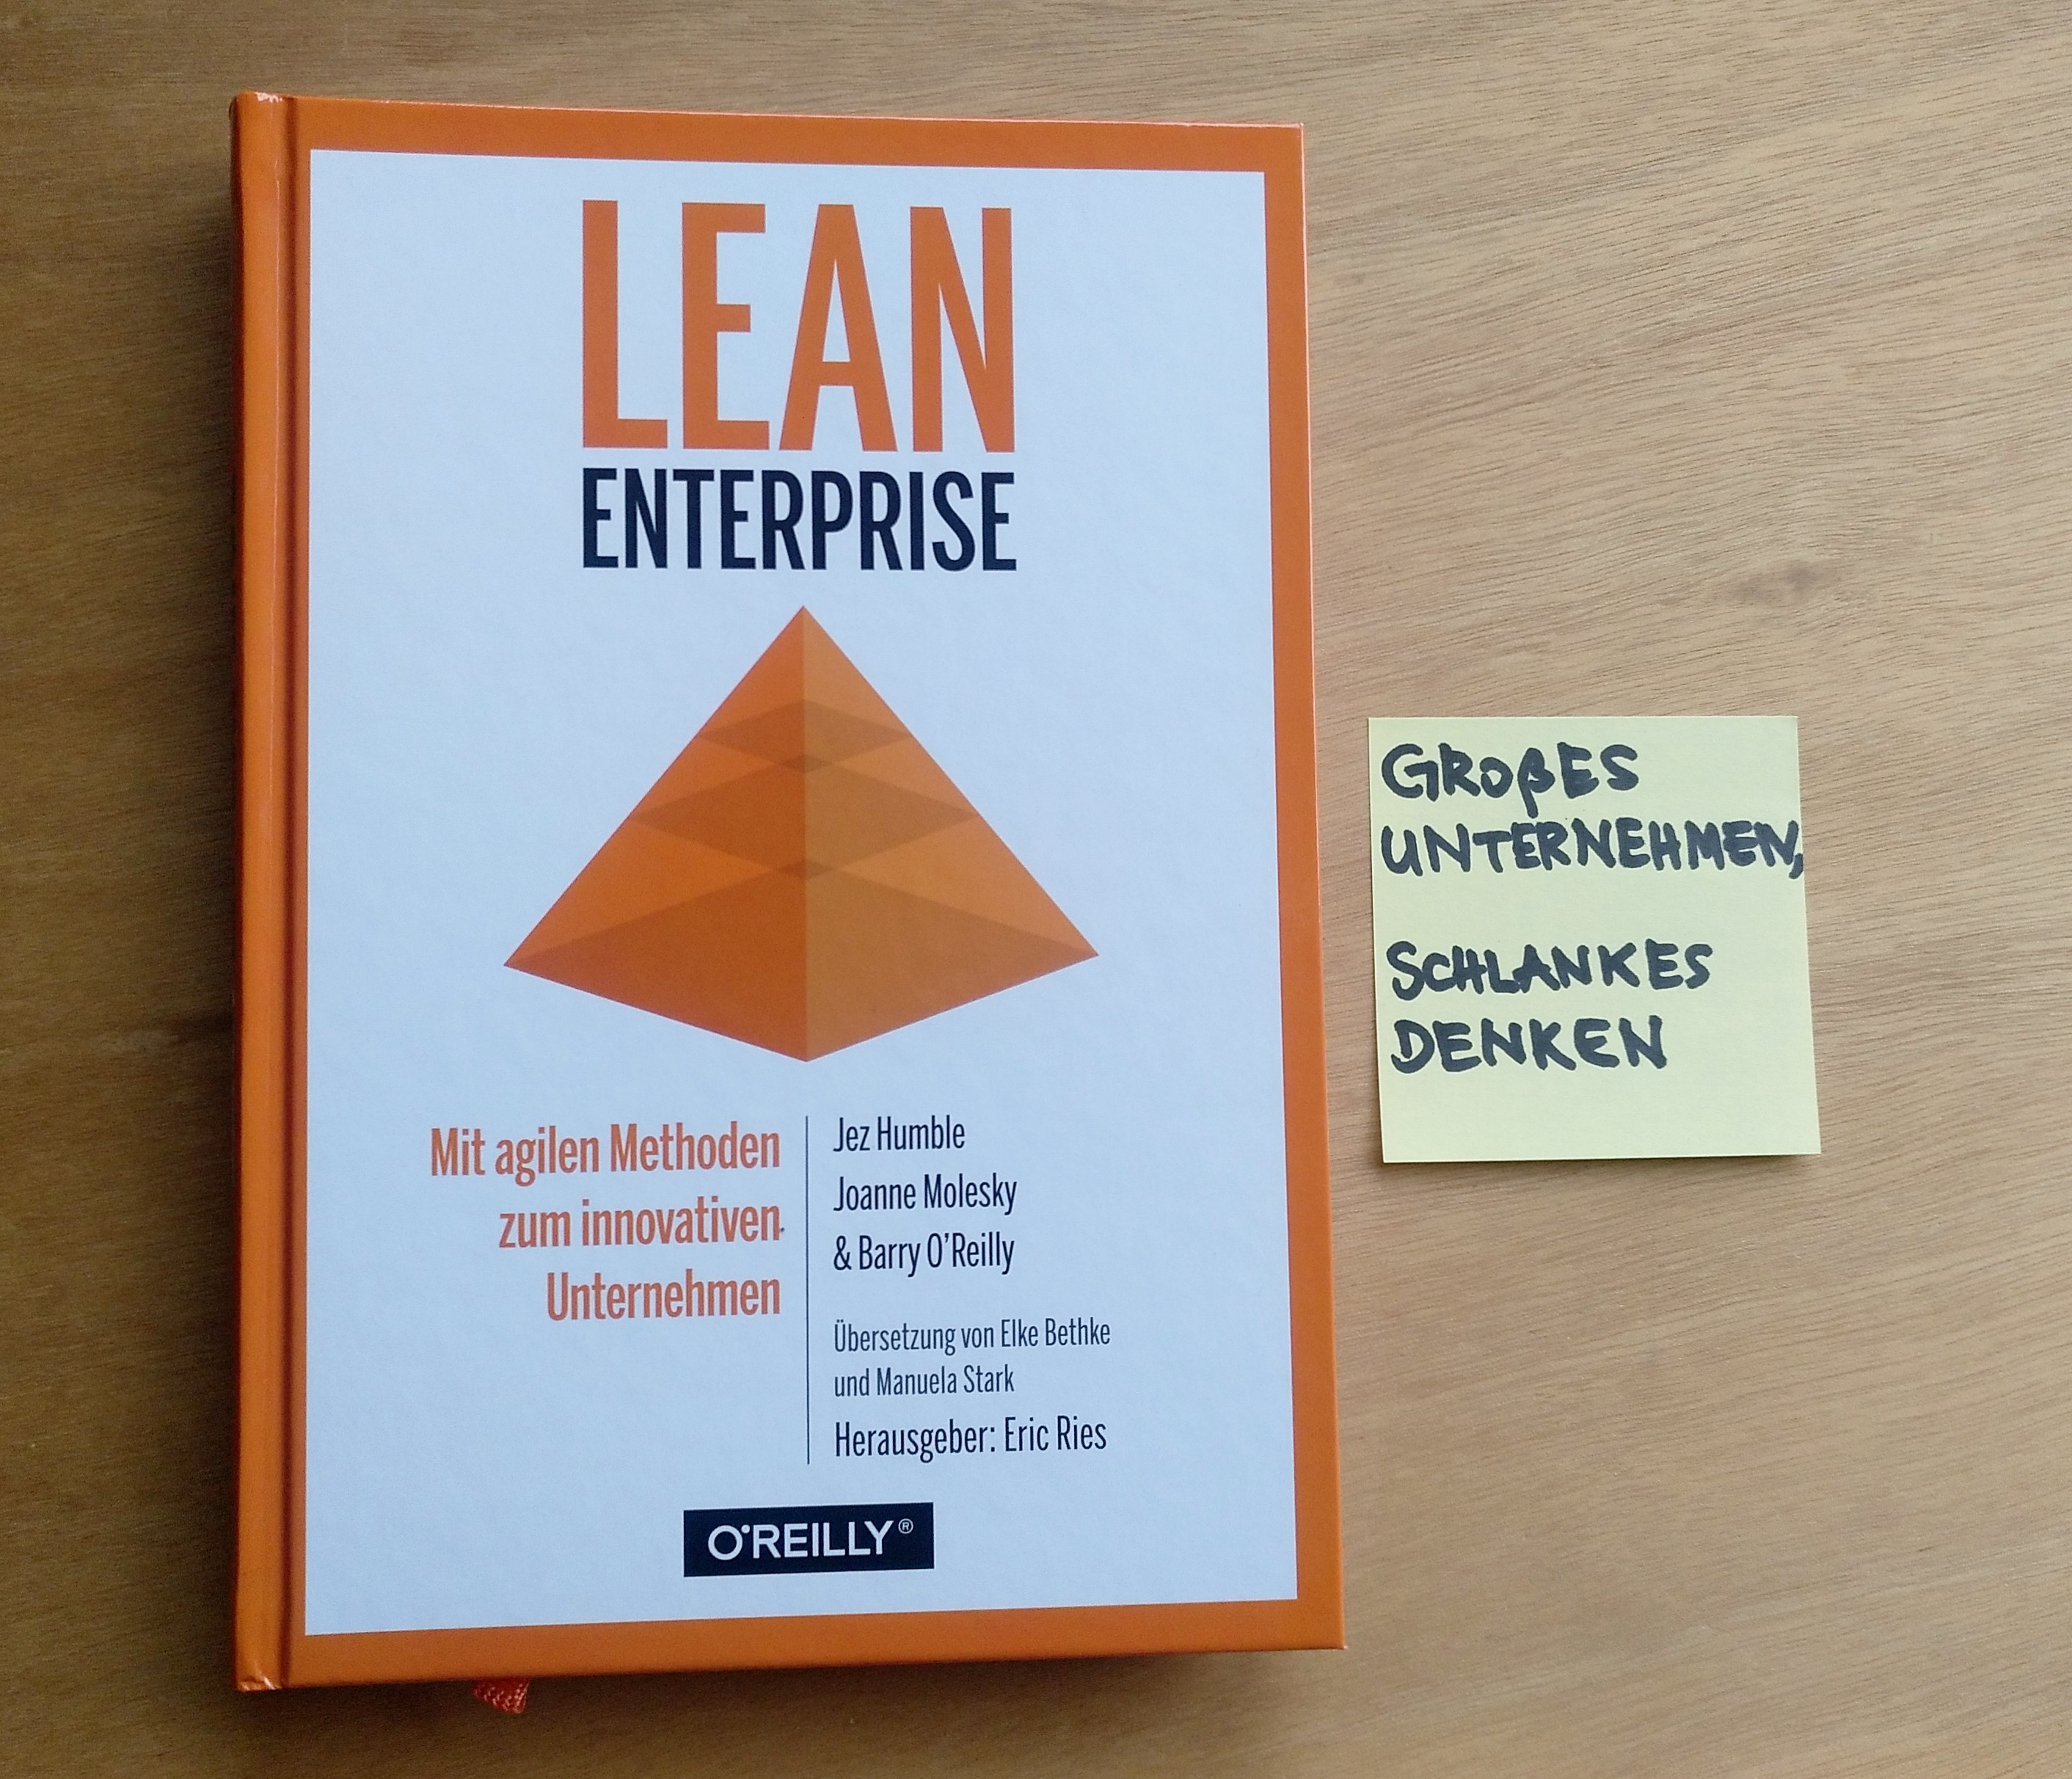 1 Lean Enterprise